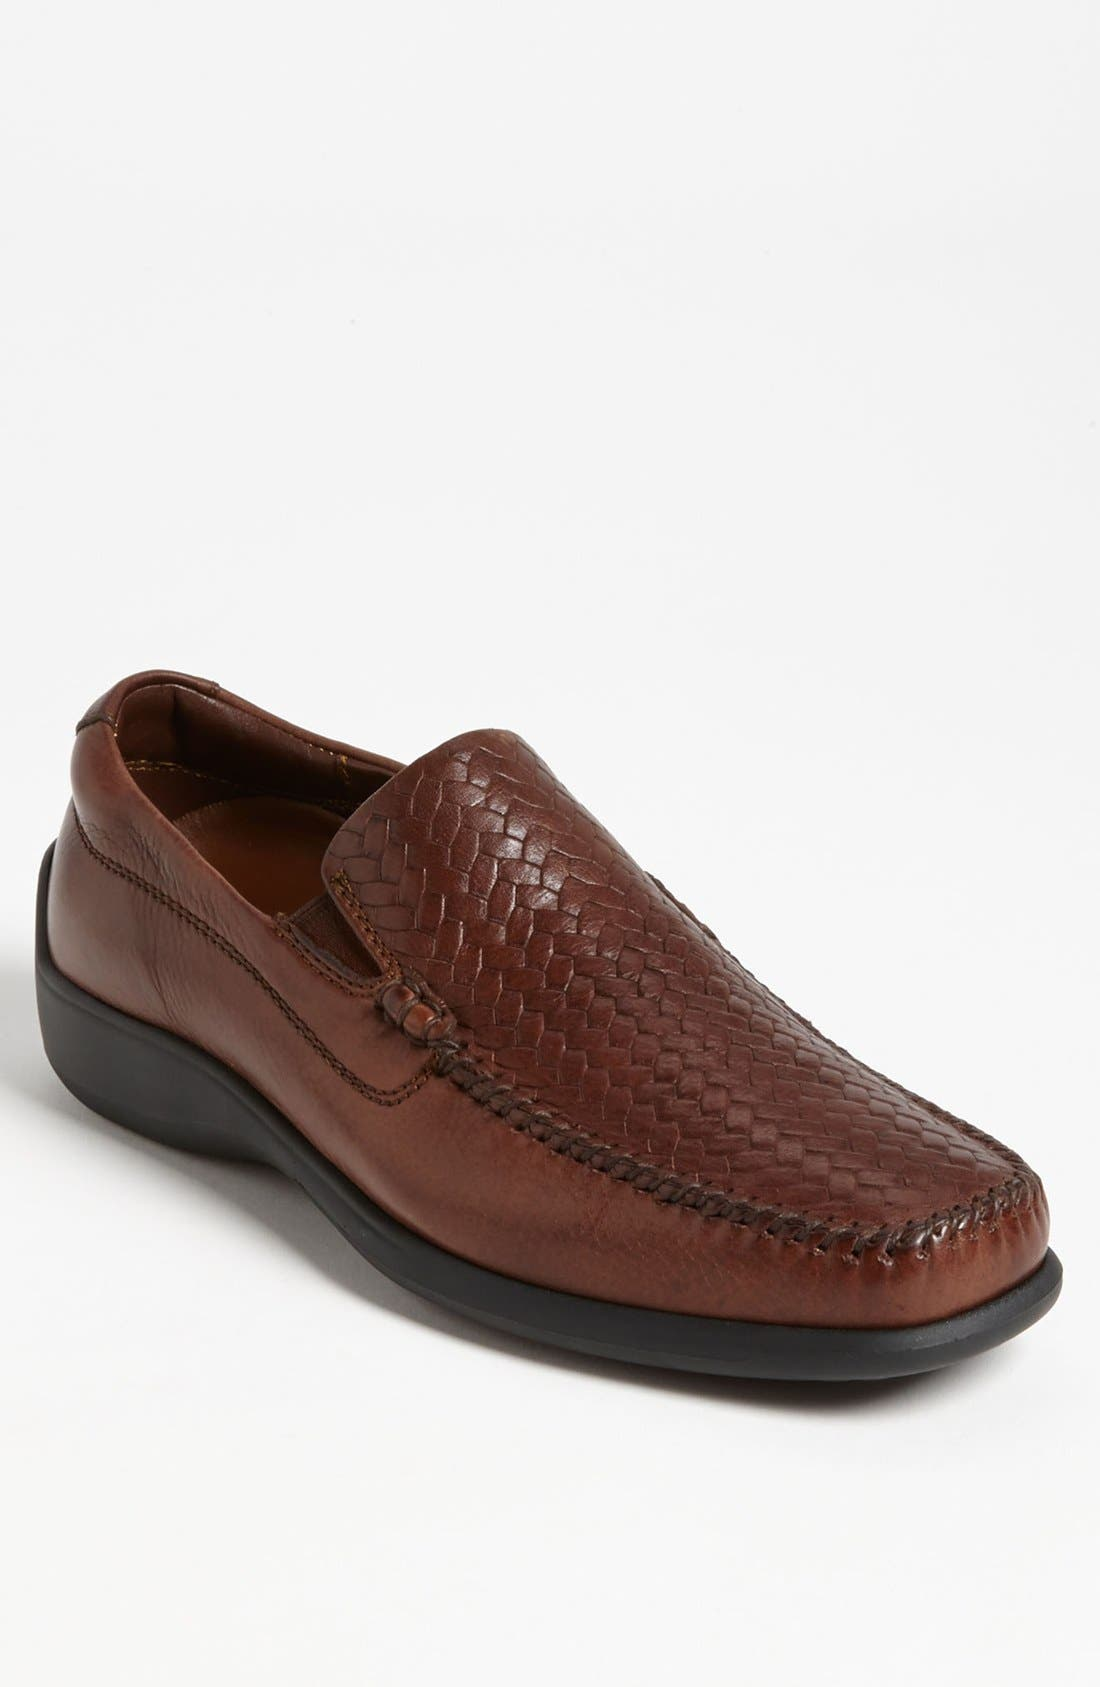 Neil M 'Palermo' Loafer